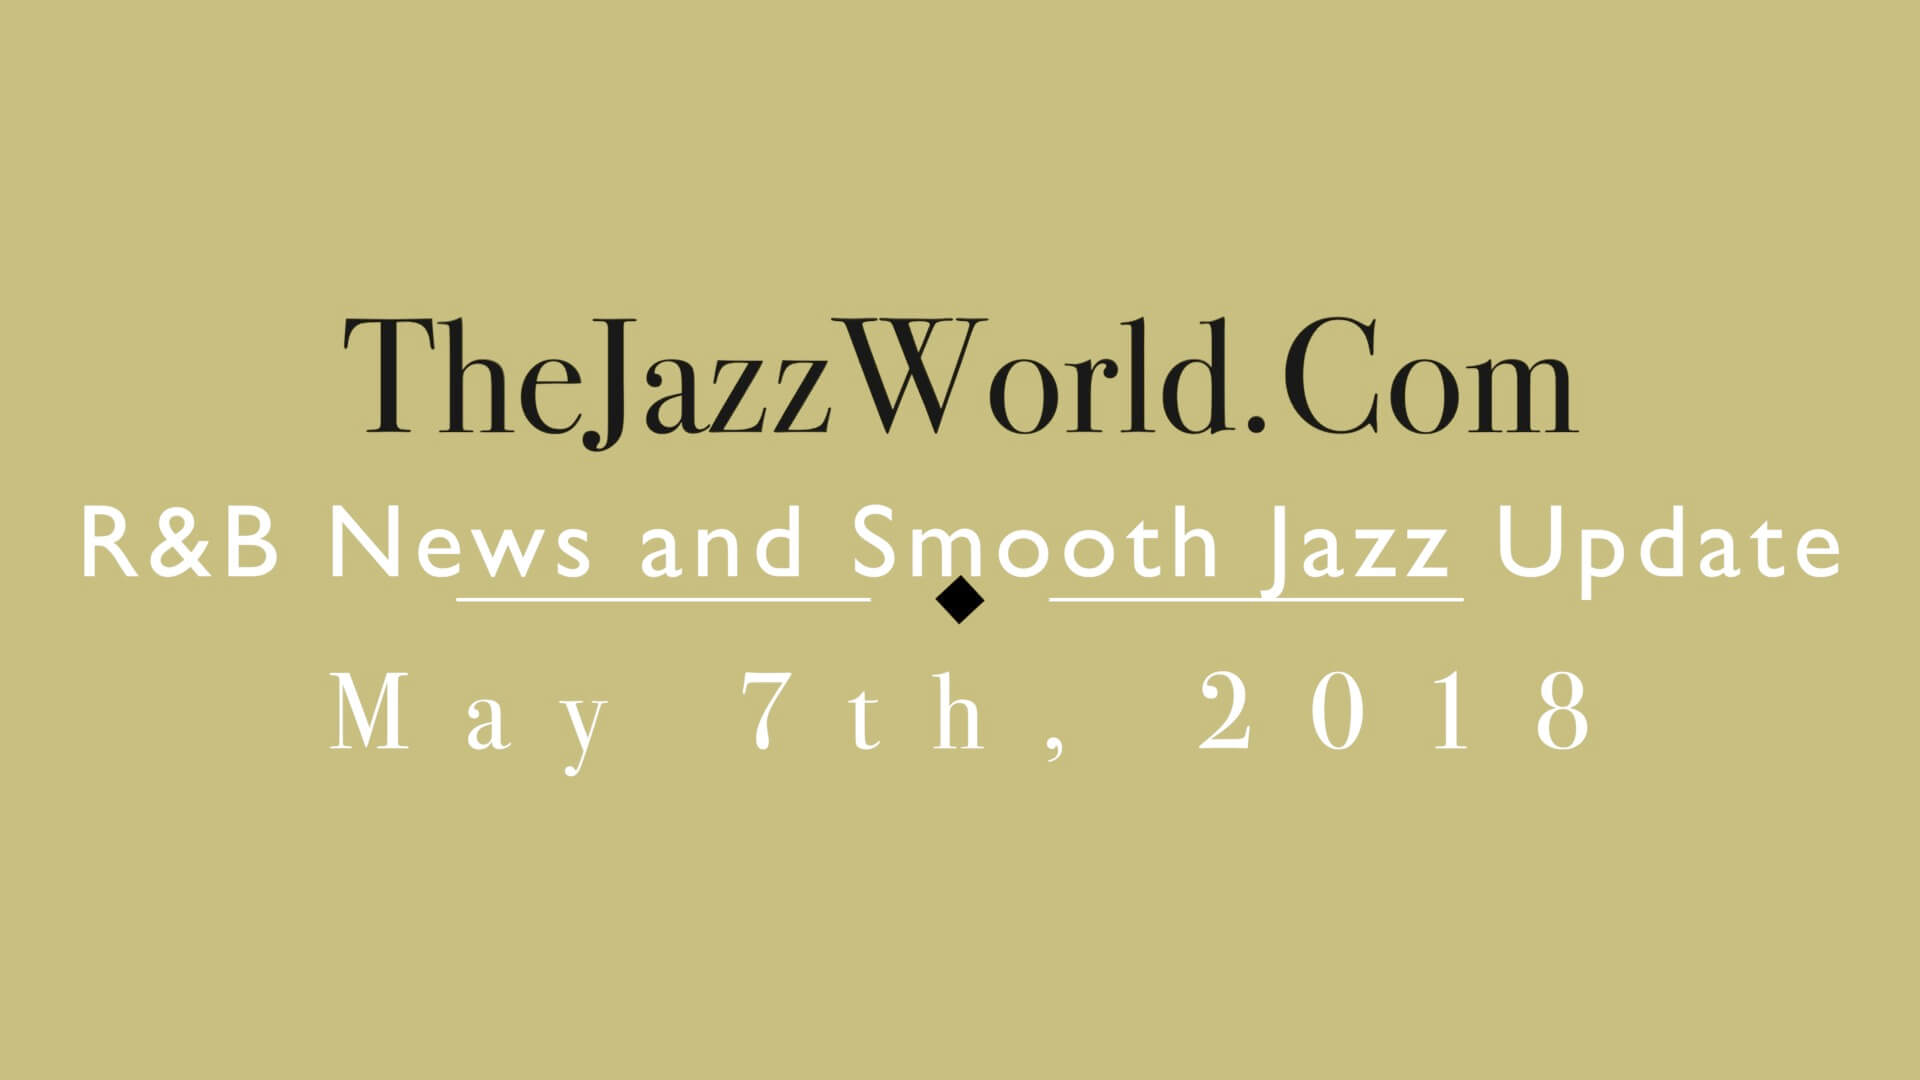 Latest R&B News and Smooth Jazz Update May 7th